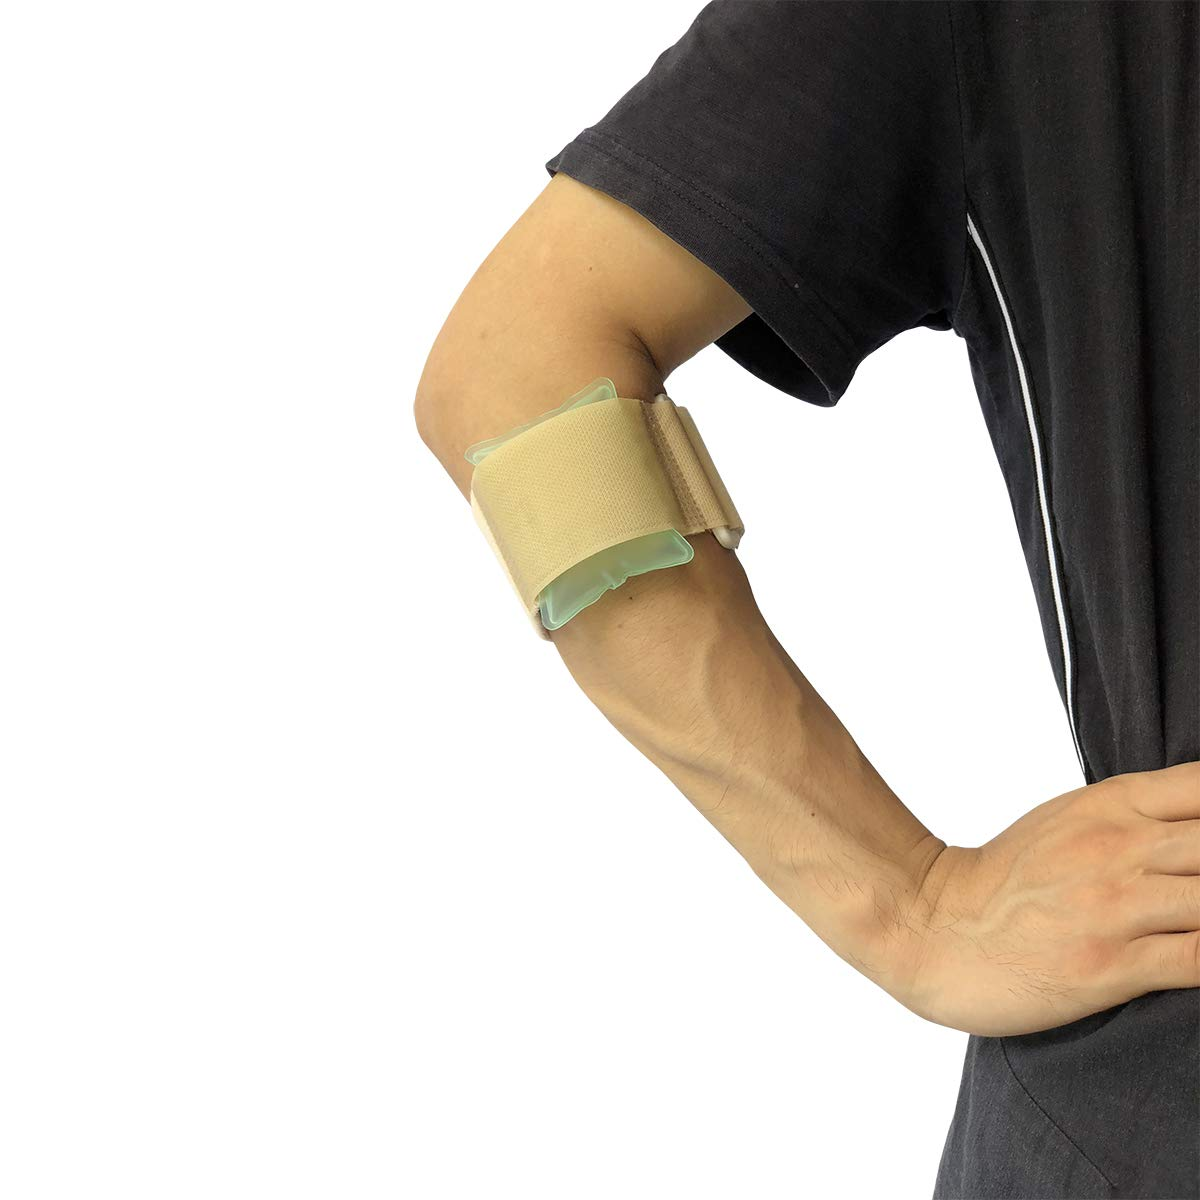 Orthomen Pneumatic Armband: Tennis/Golfers Elbow Support Strap - One Size Fits Most